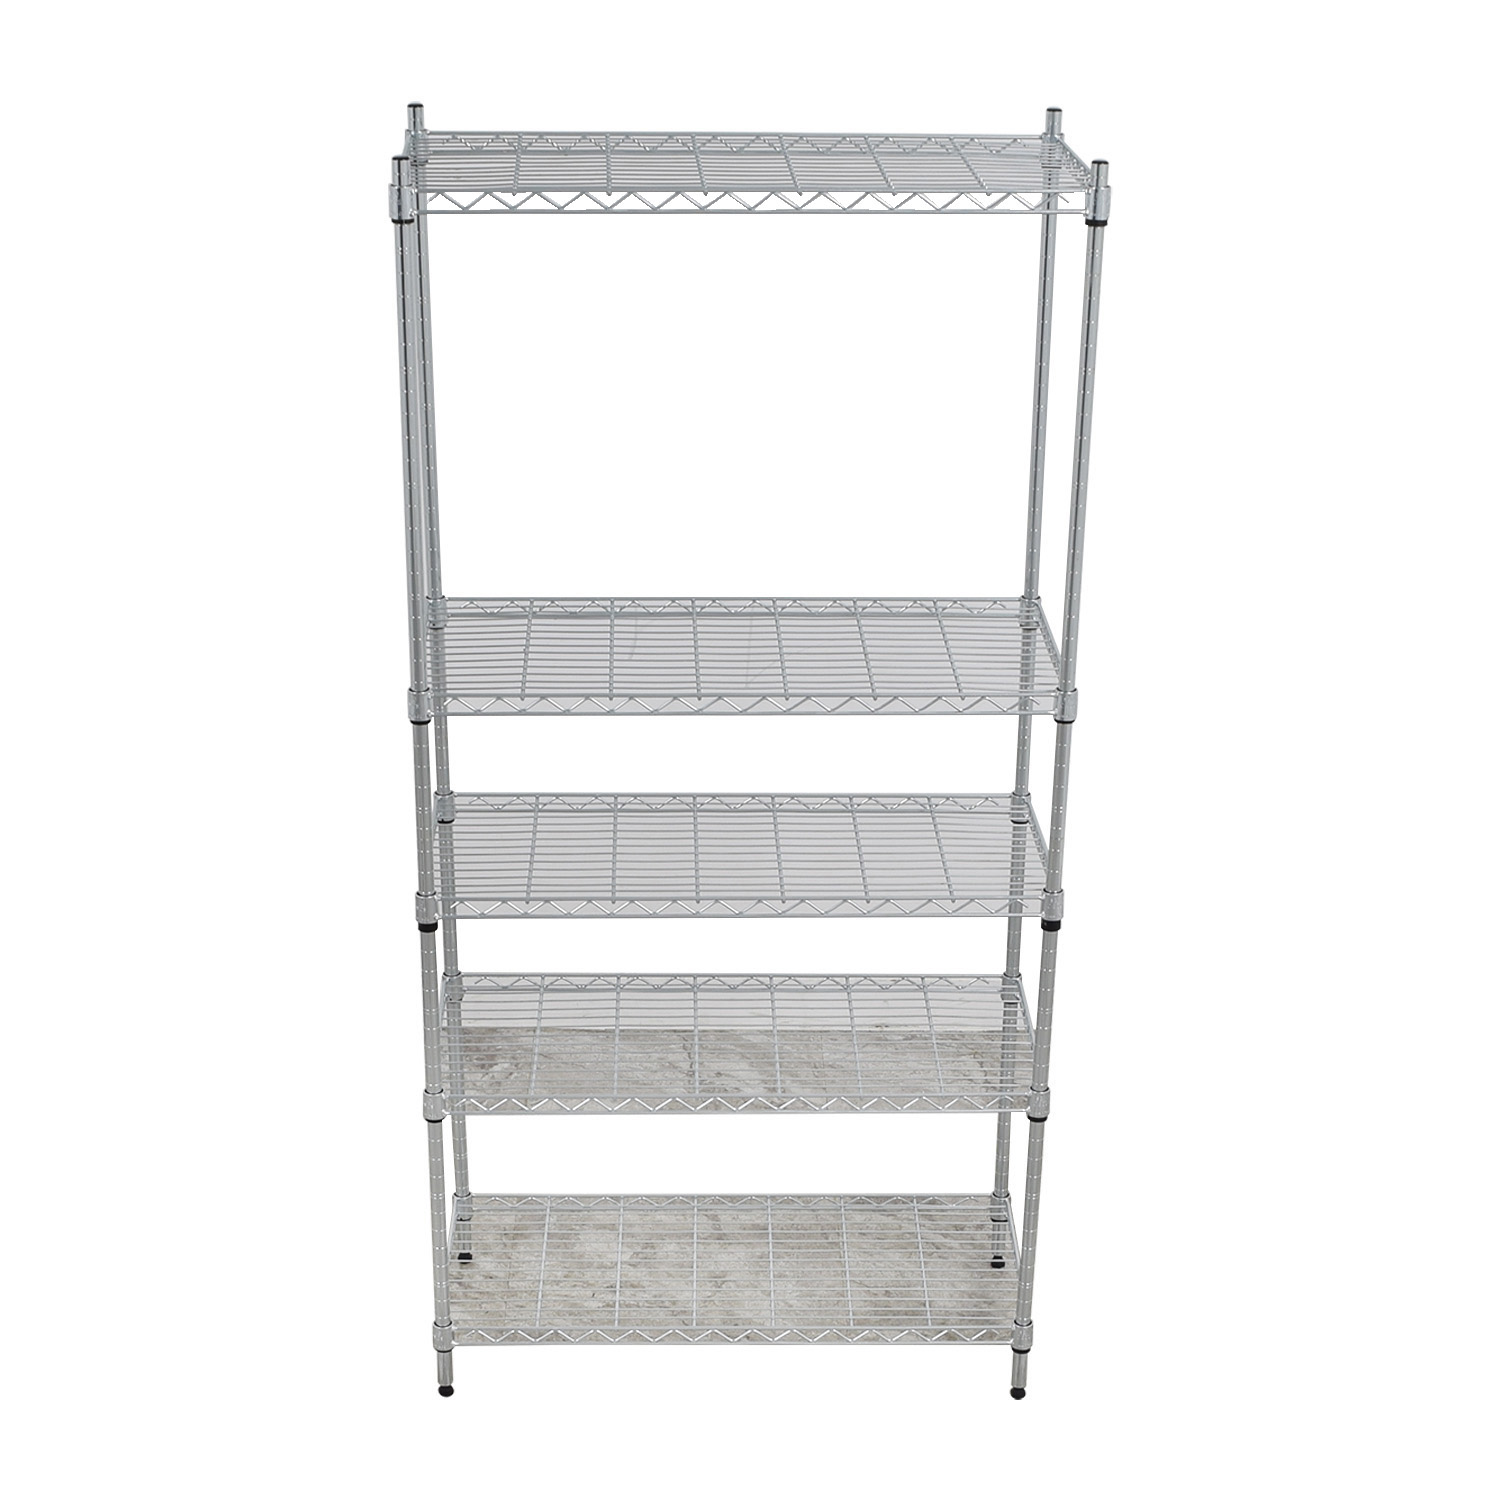 Seville Classics Seville Classics Metal Kitchen Rack Storage